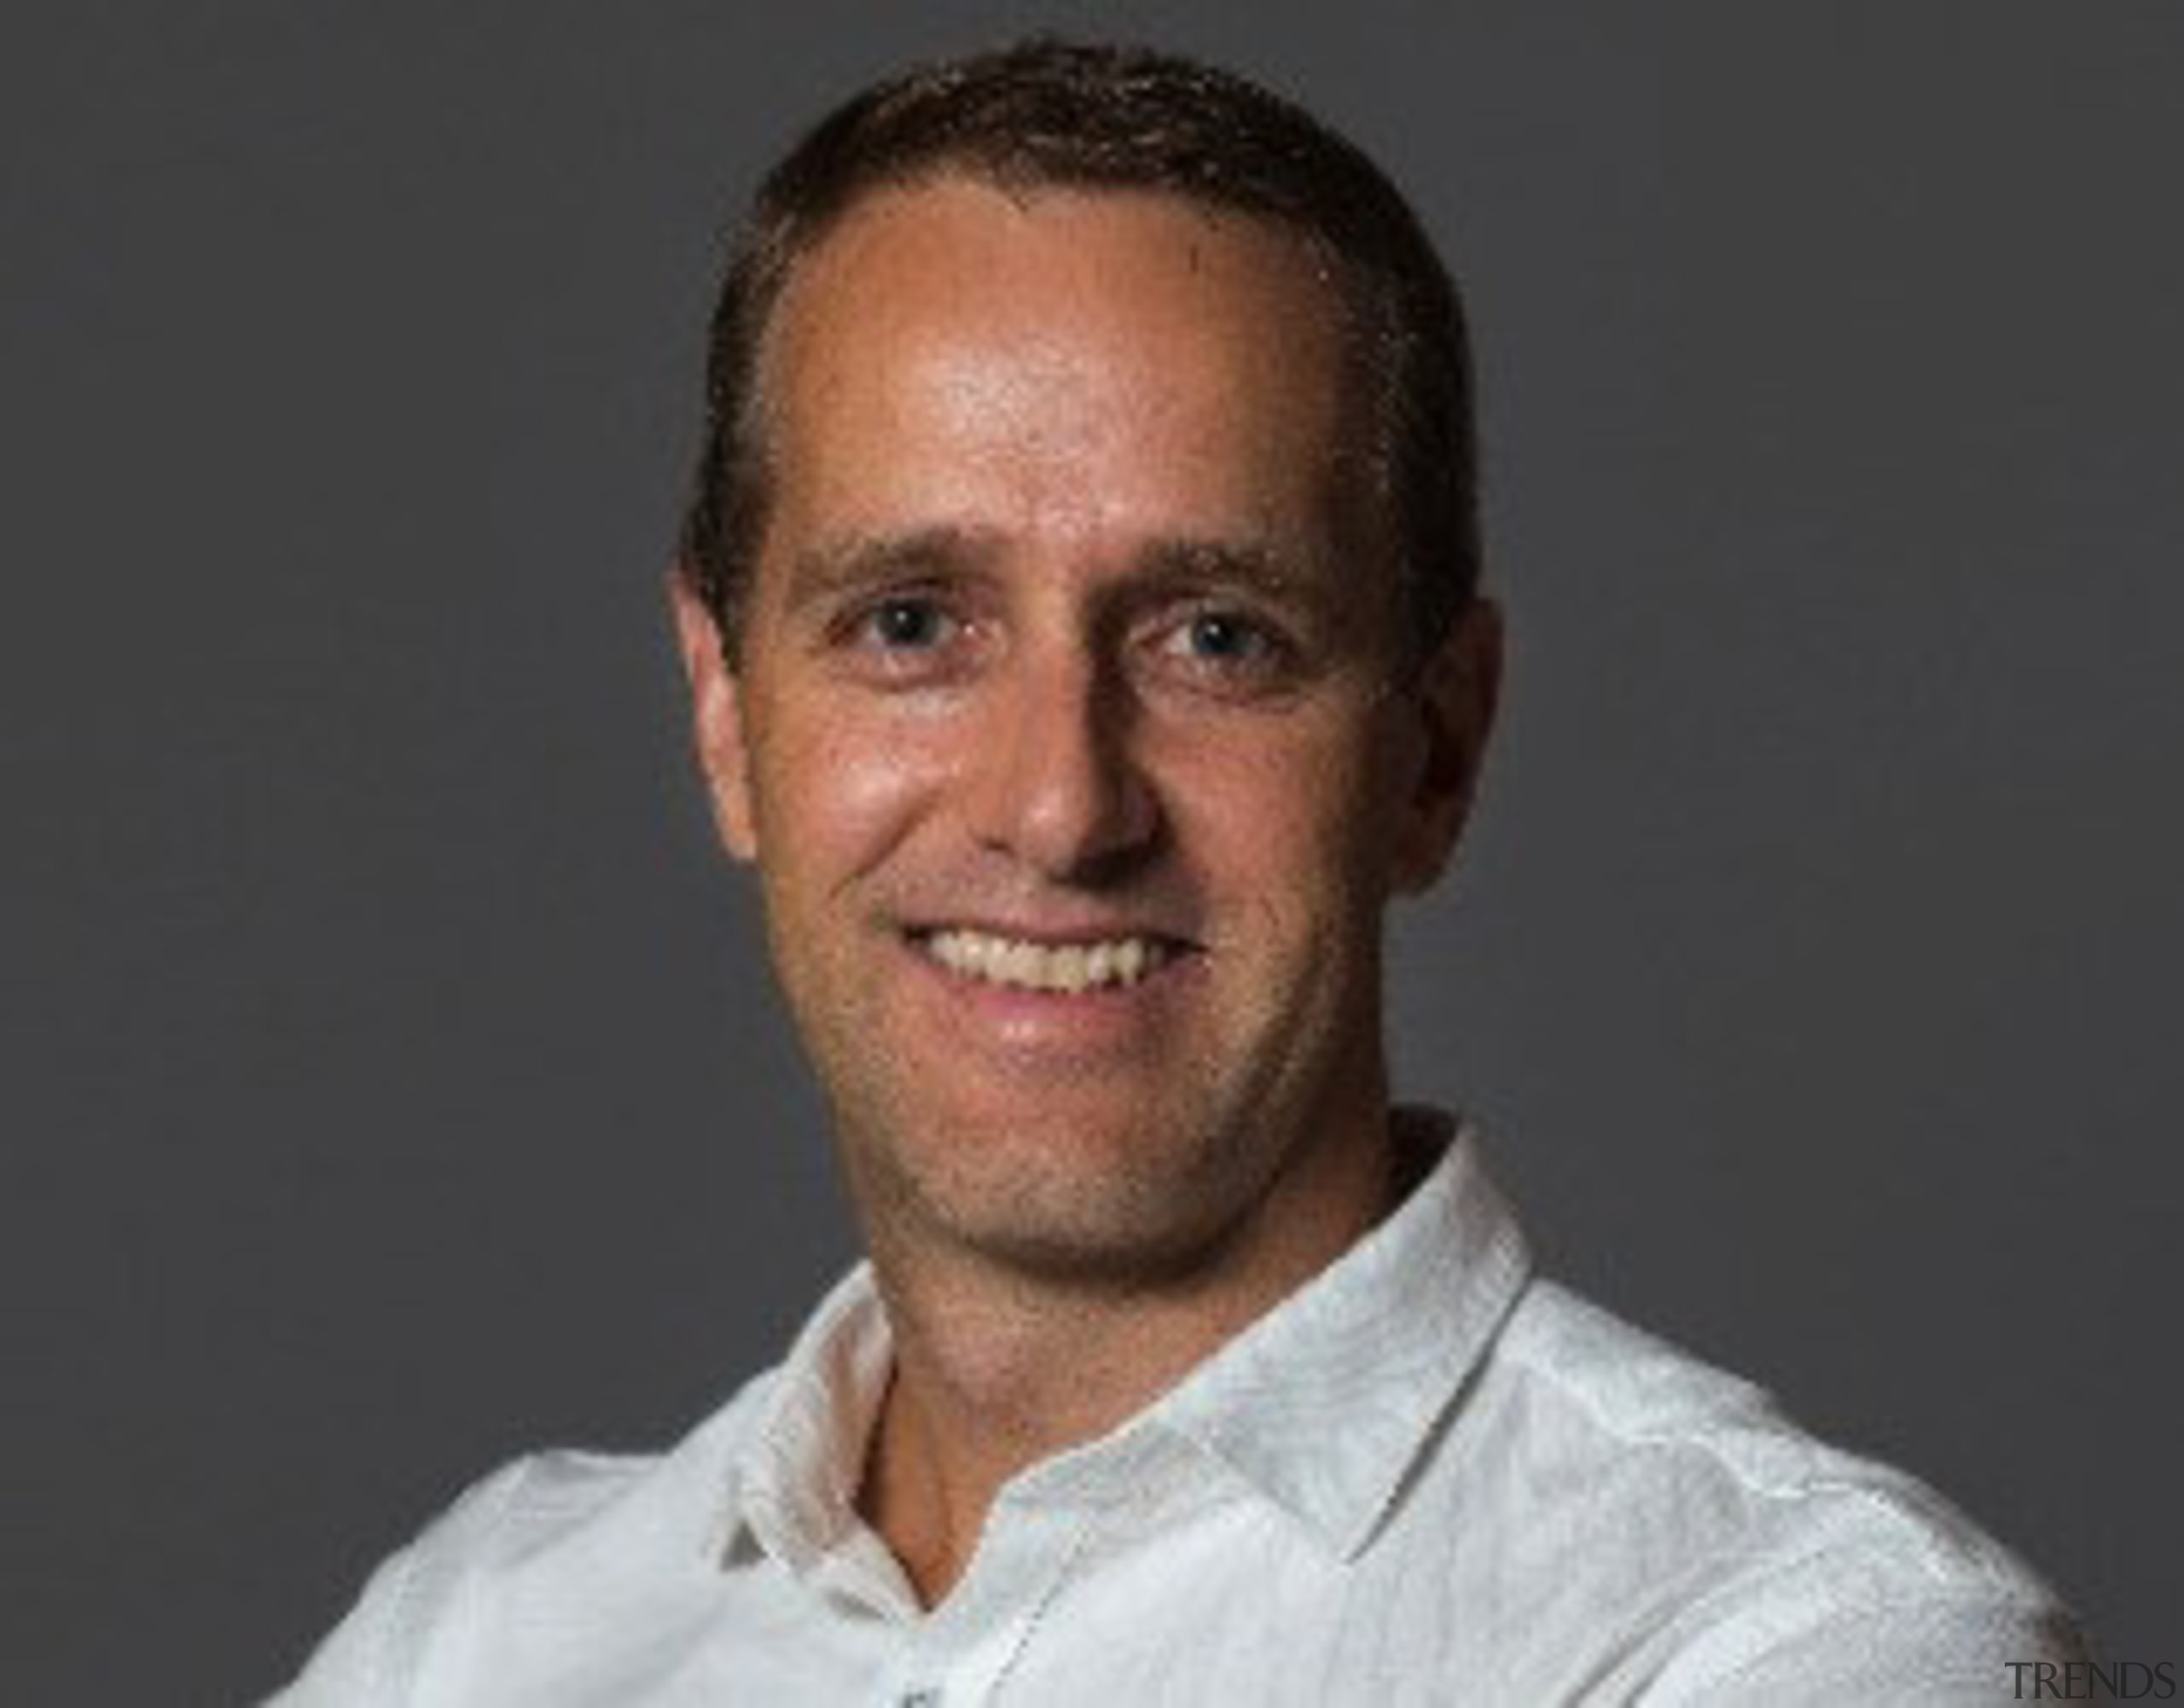 Damien Sheehan, Regus Country Head for Australia and chin, entrepreneur, forehead, man, person, professional, gray